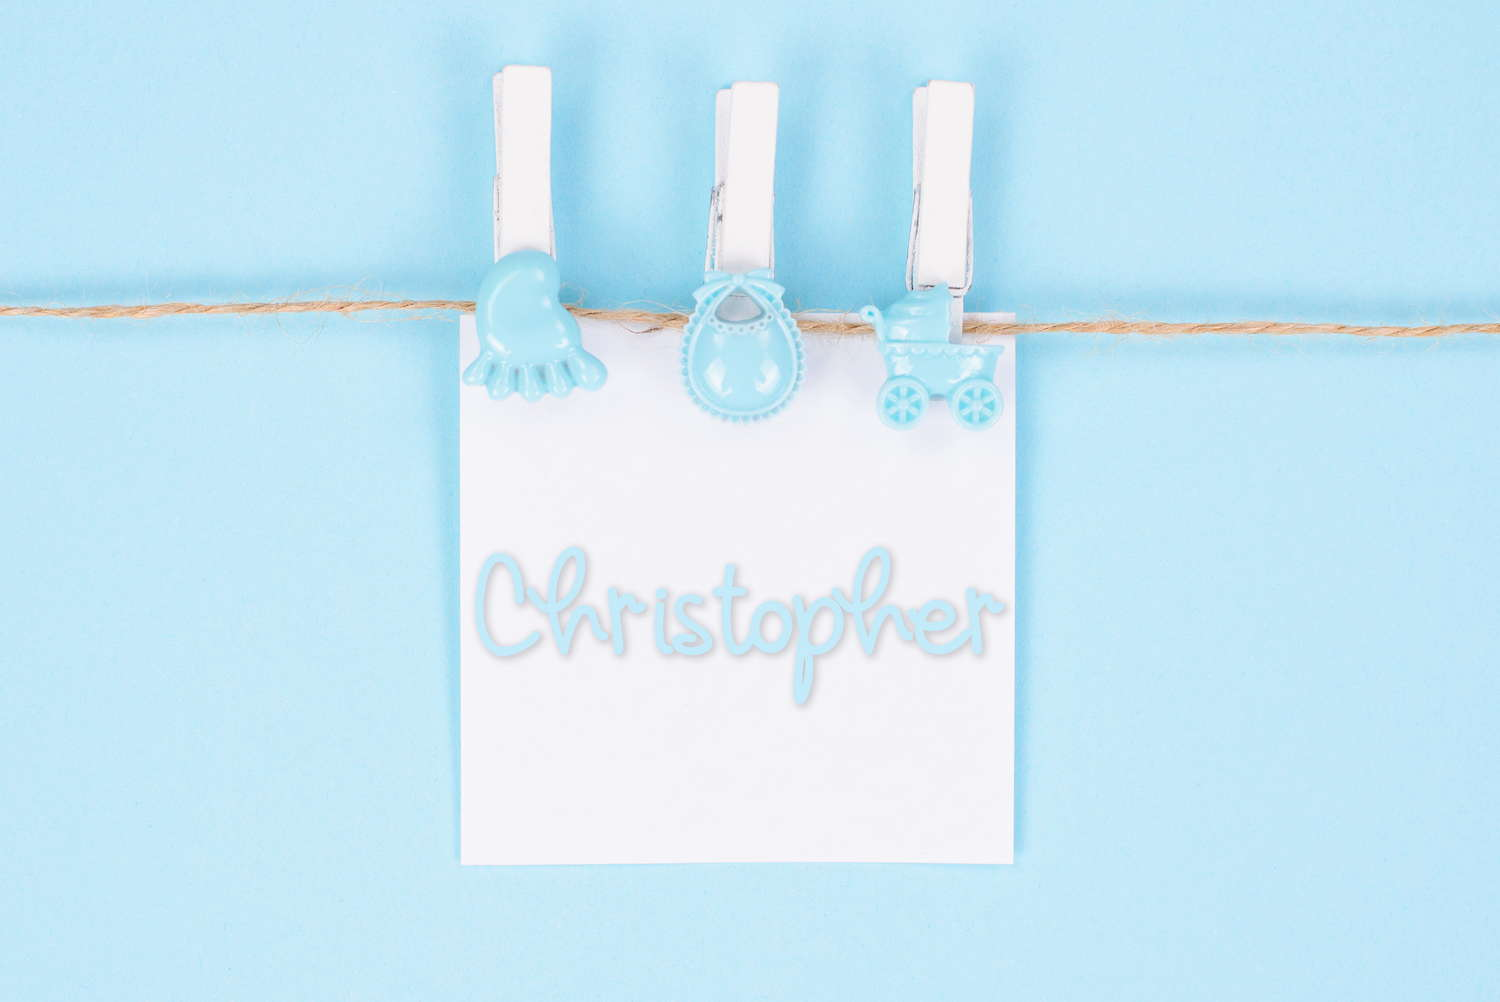 Christopher Baby Name